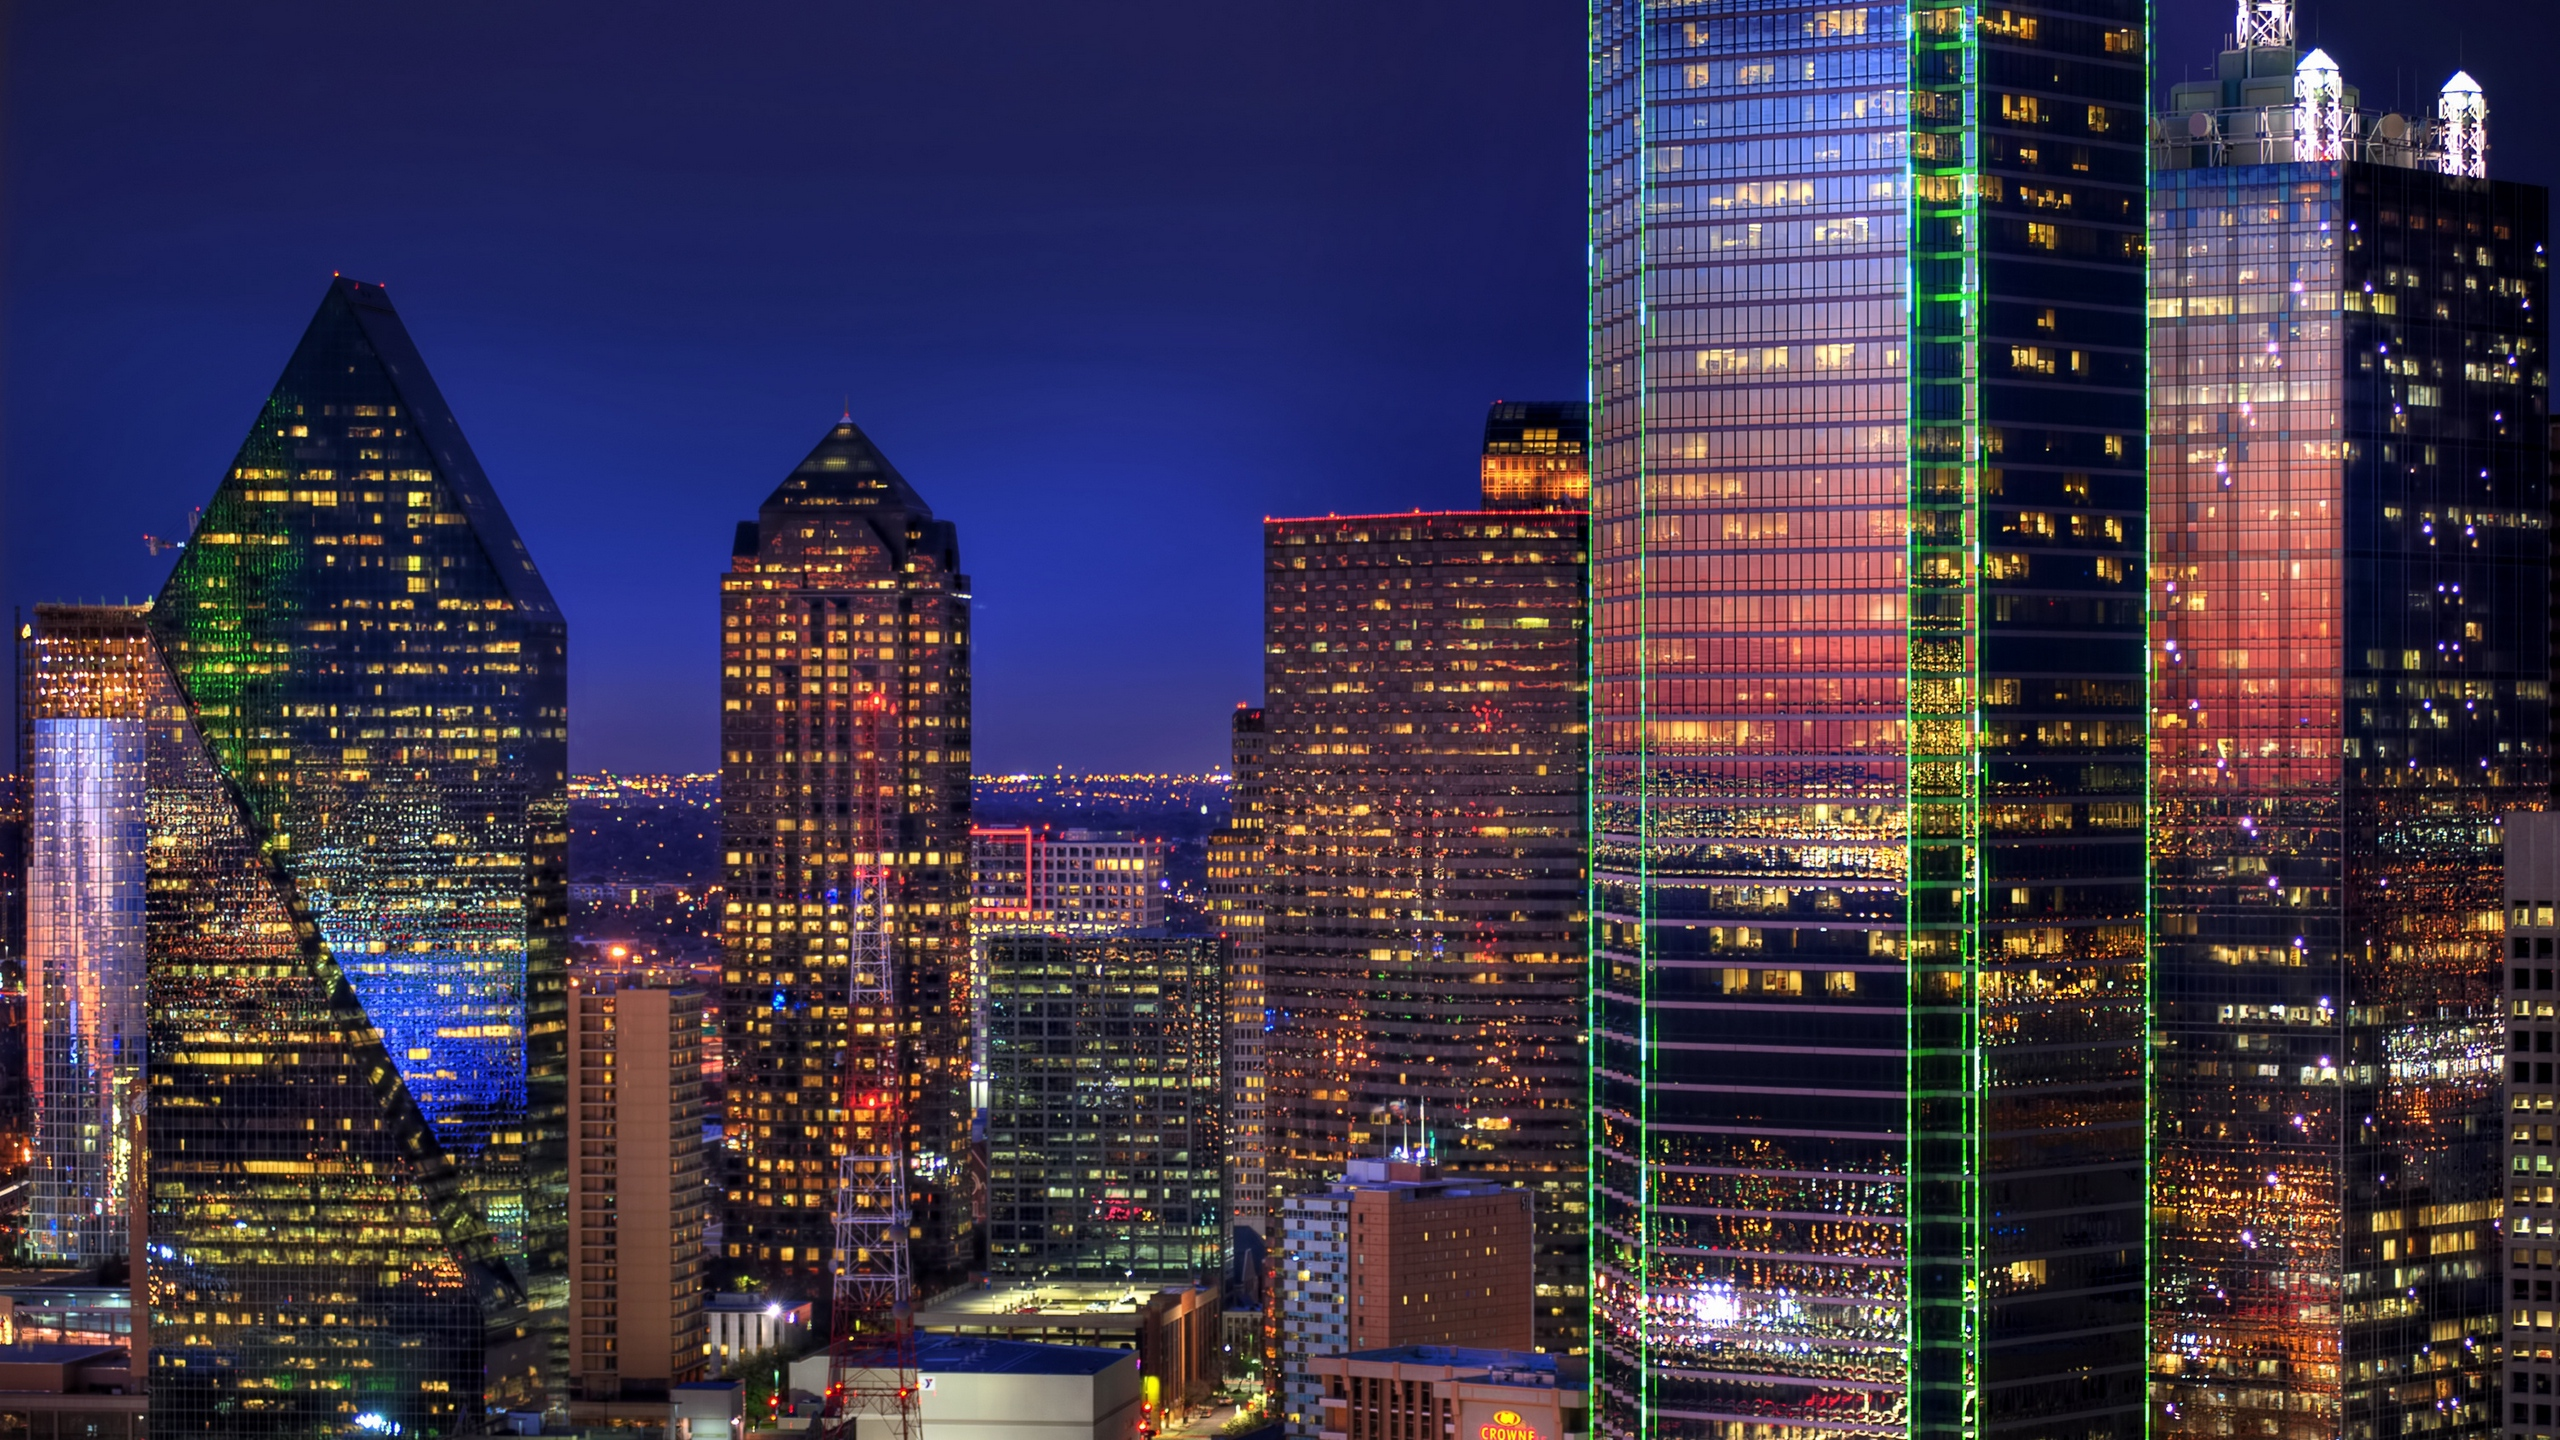 Download wallpapers 2560x1440 dallas, skyscrapers, buildings, night